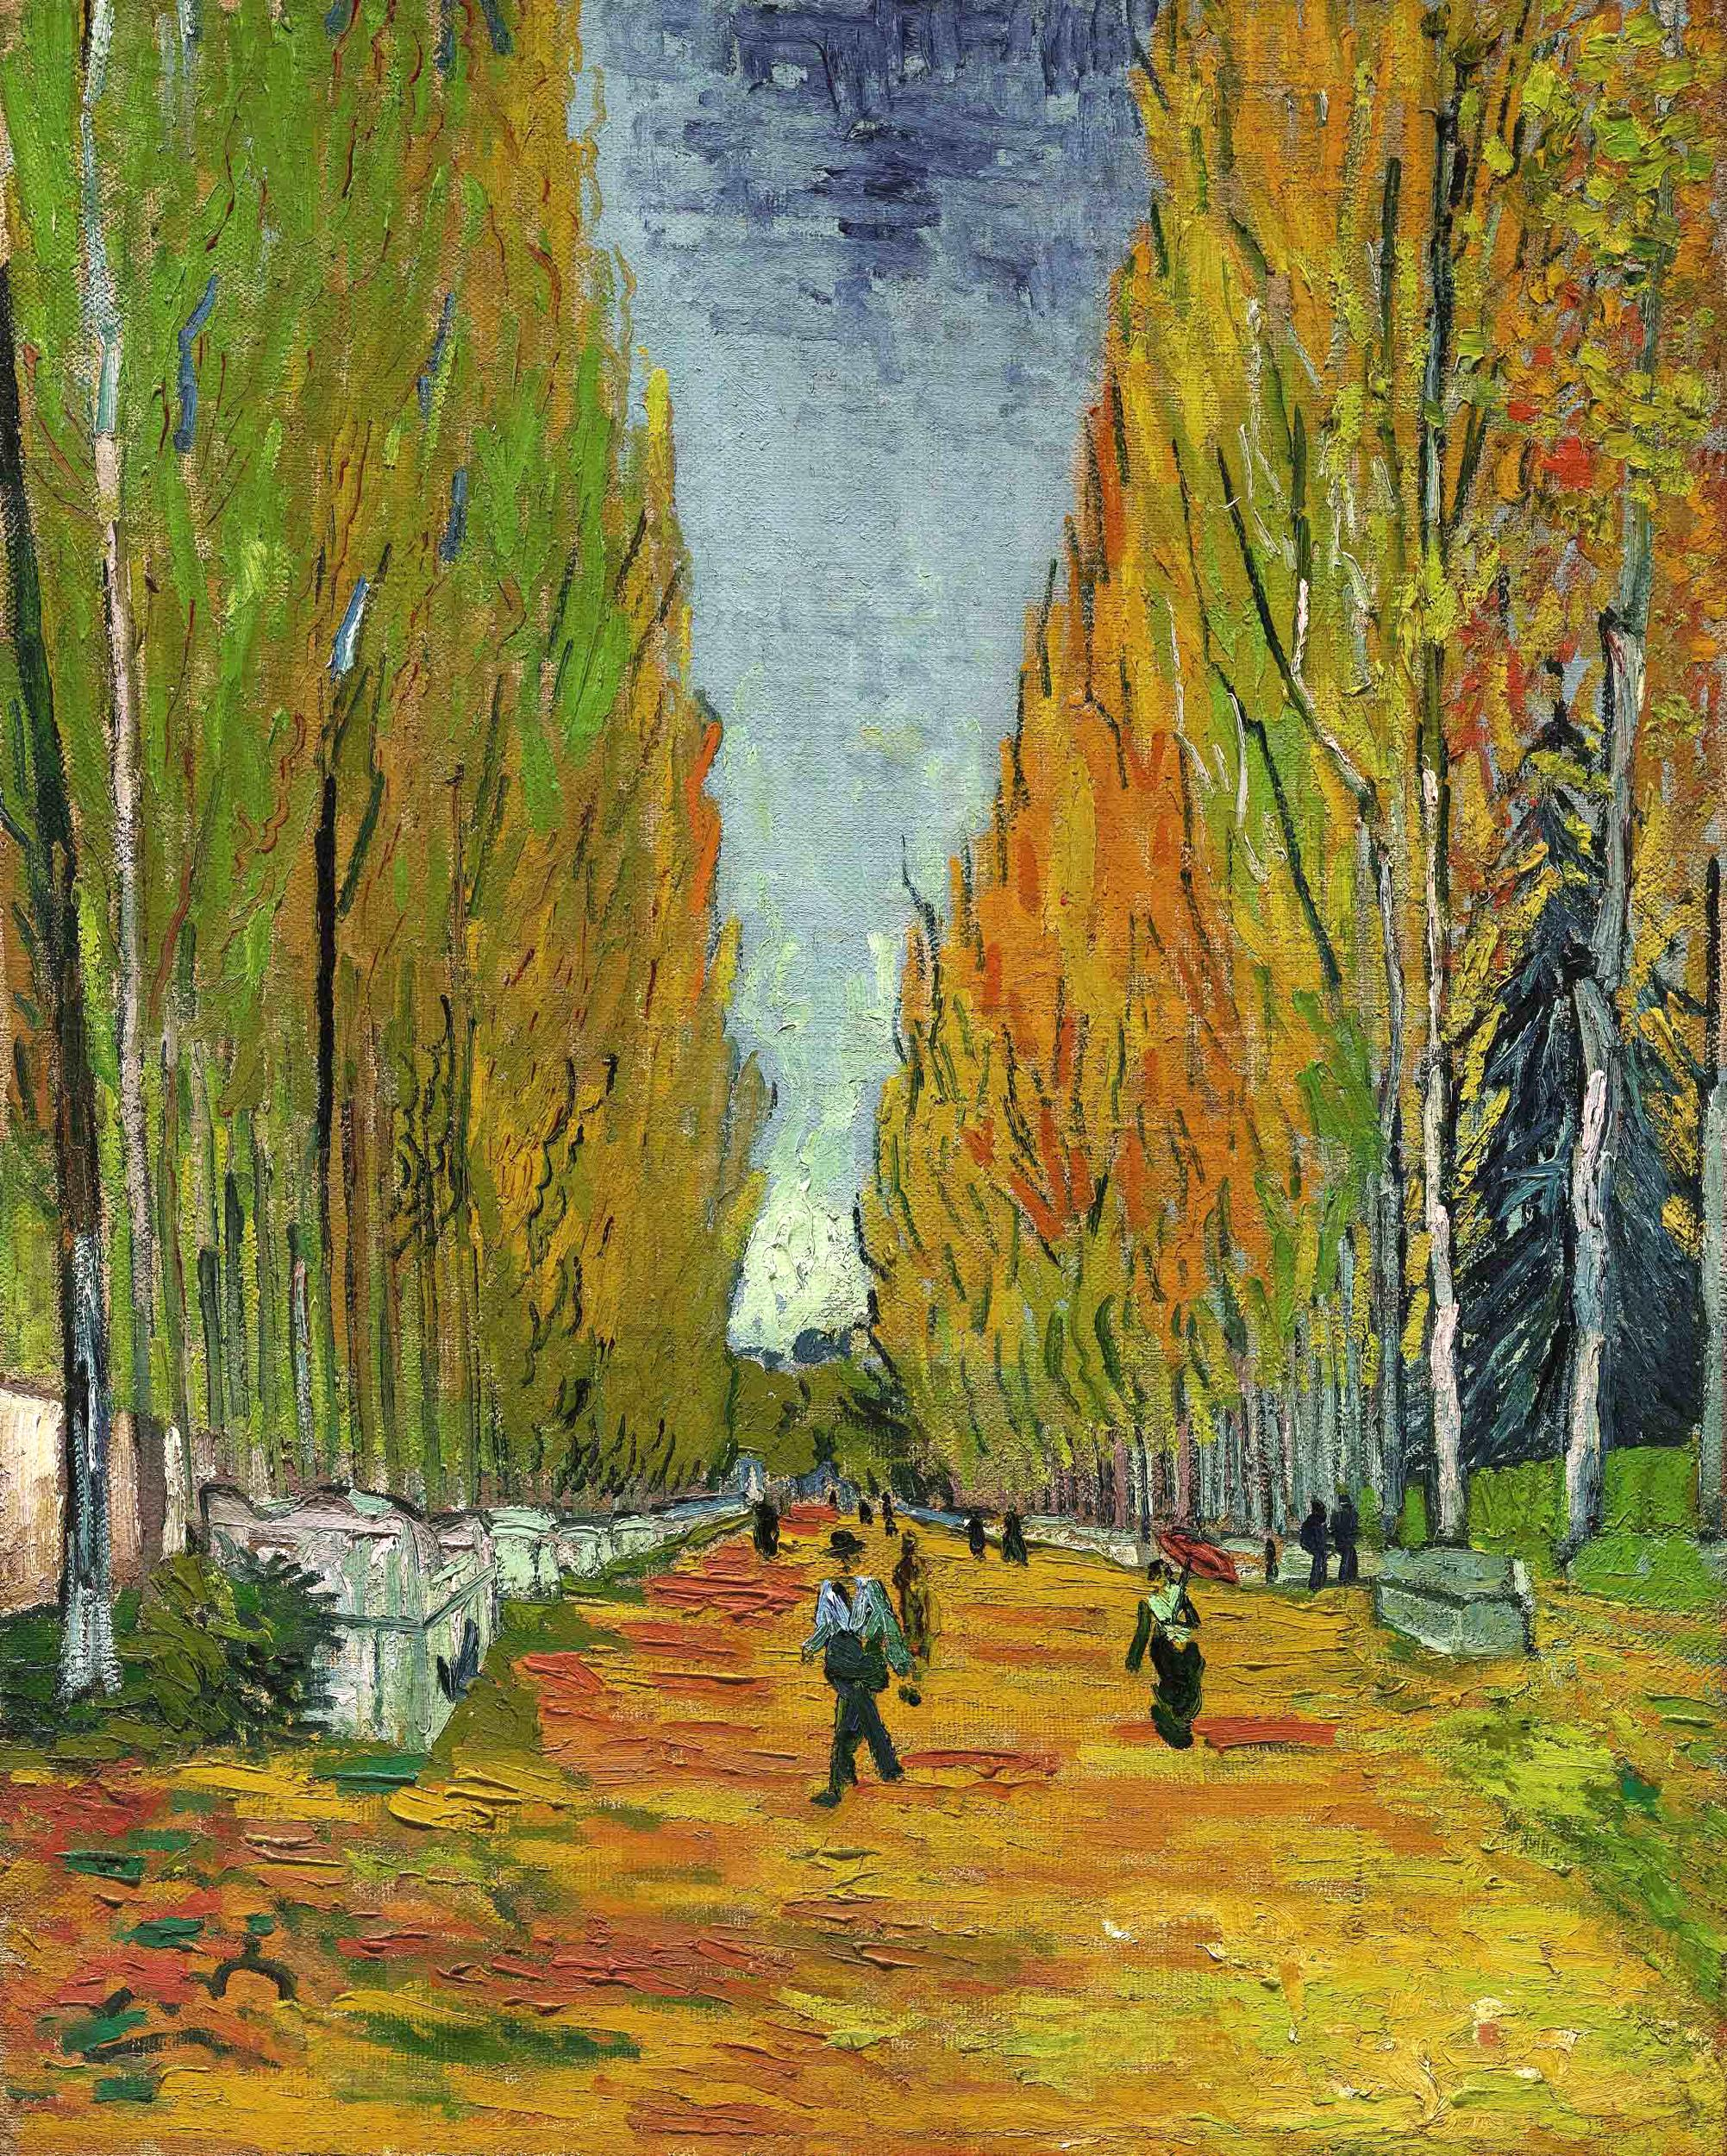 Van Gogh work fetches over $66 million at New York auction